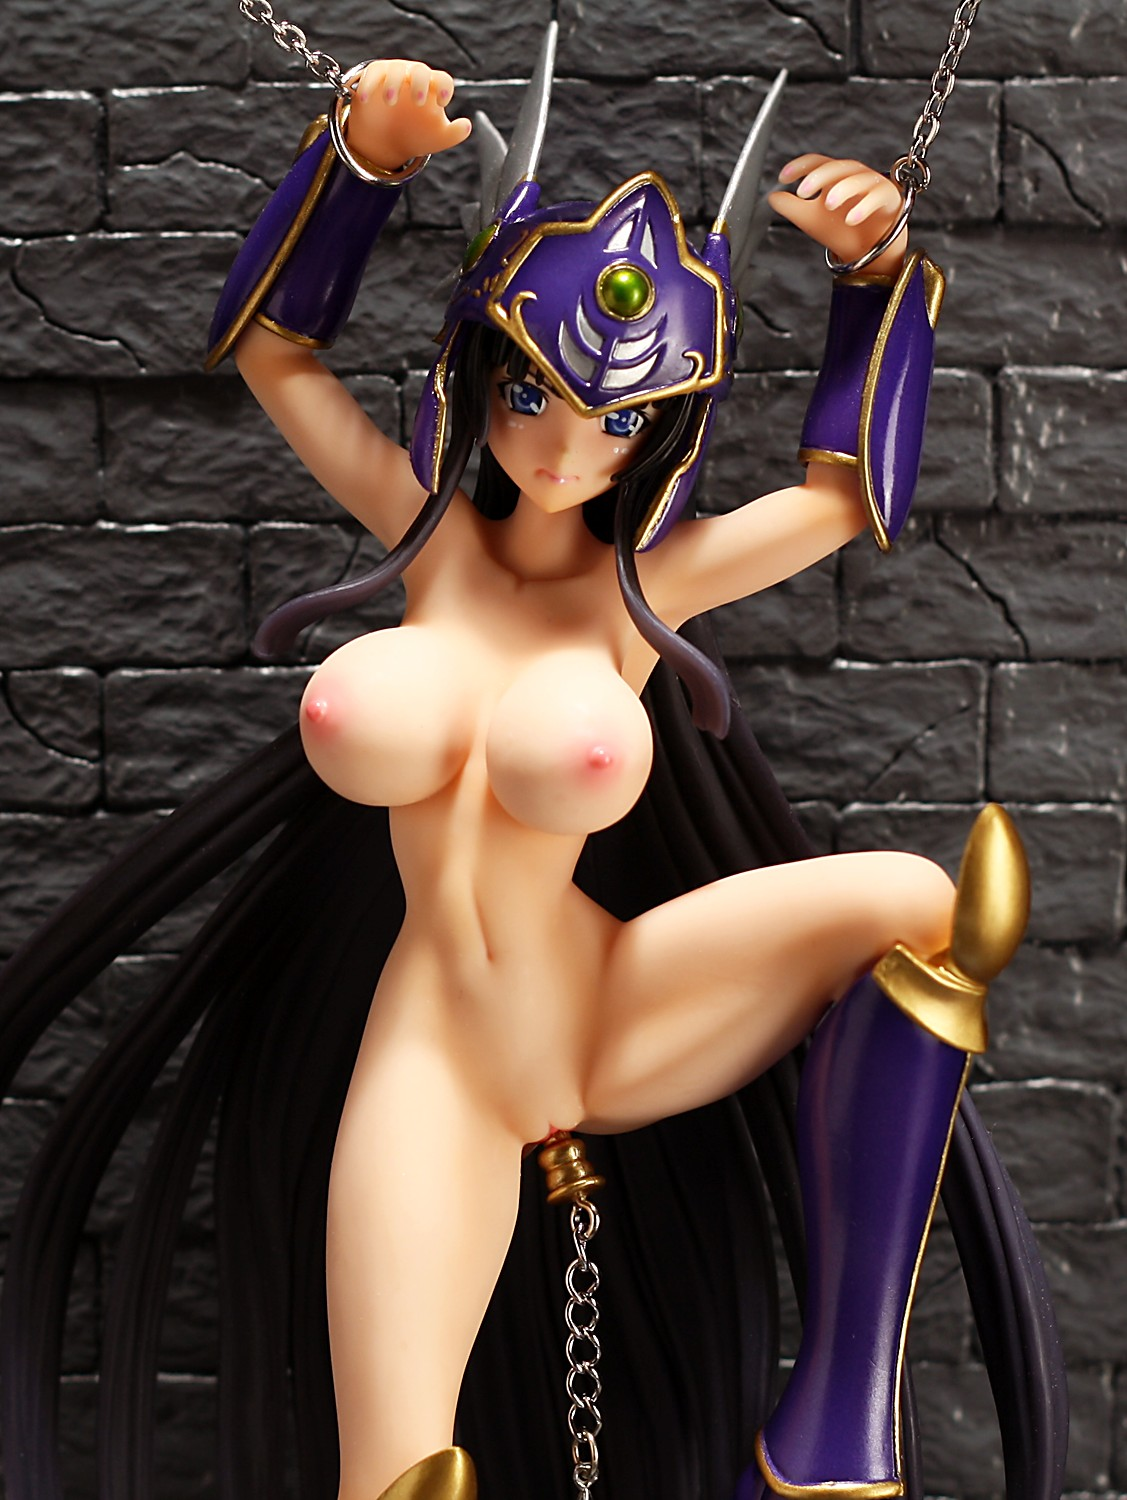 adult hentai figurines - Giga Pulse Aaliyah from Ikusa Otome Valkyrie 2 Review